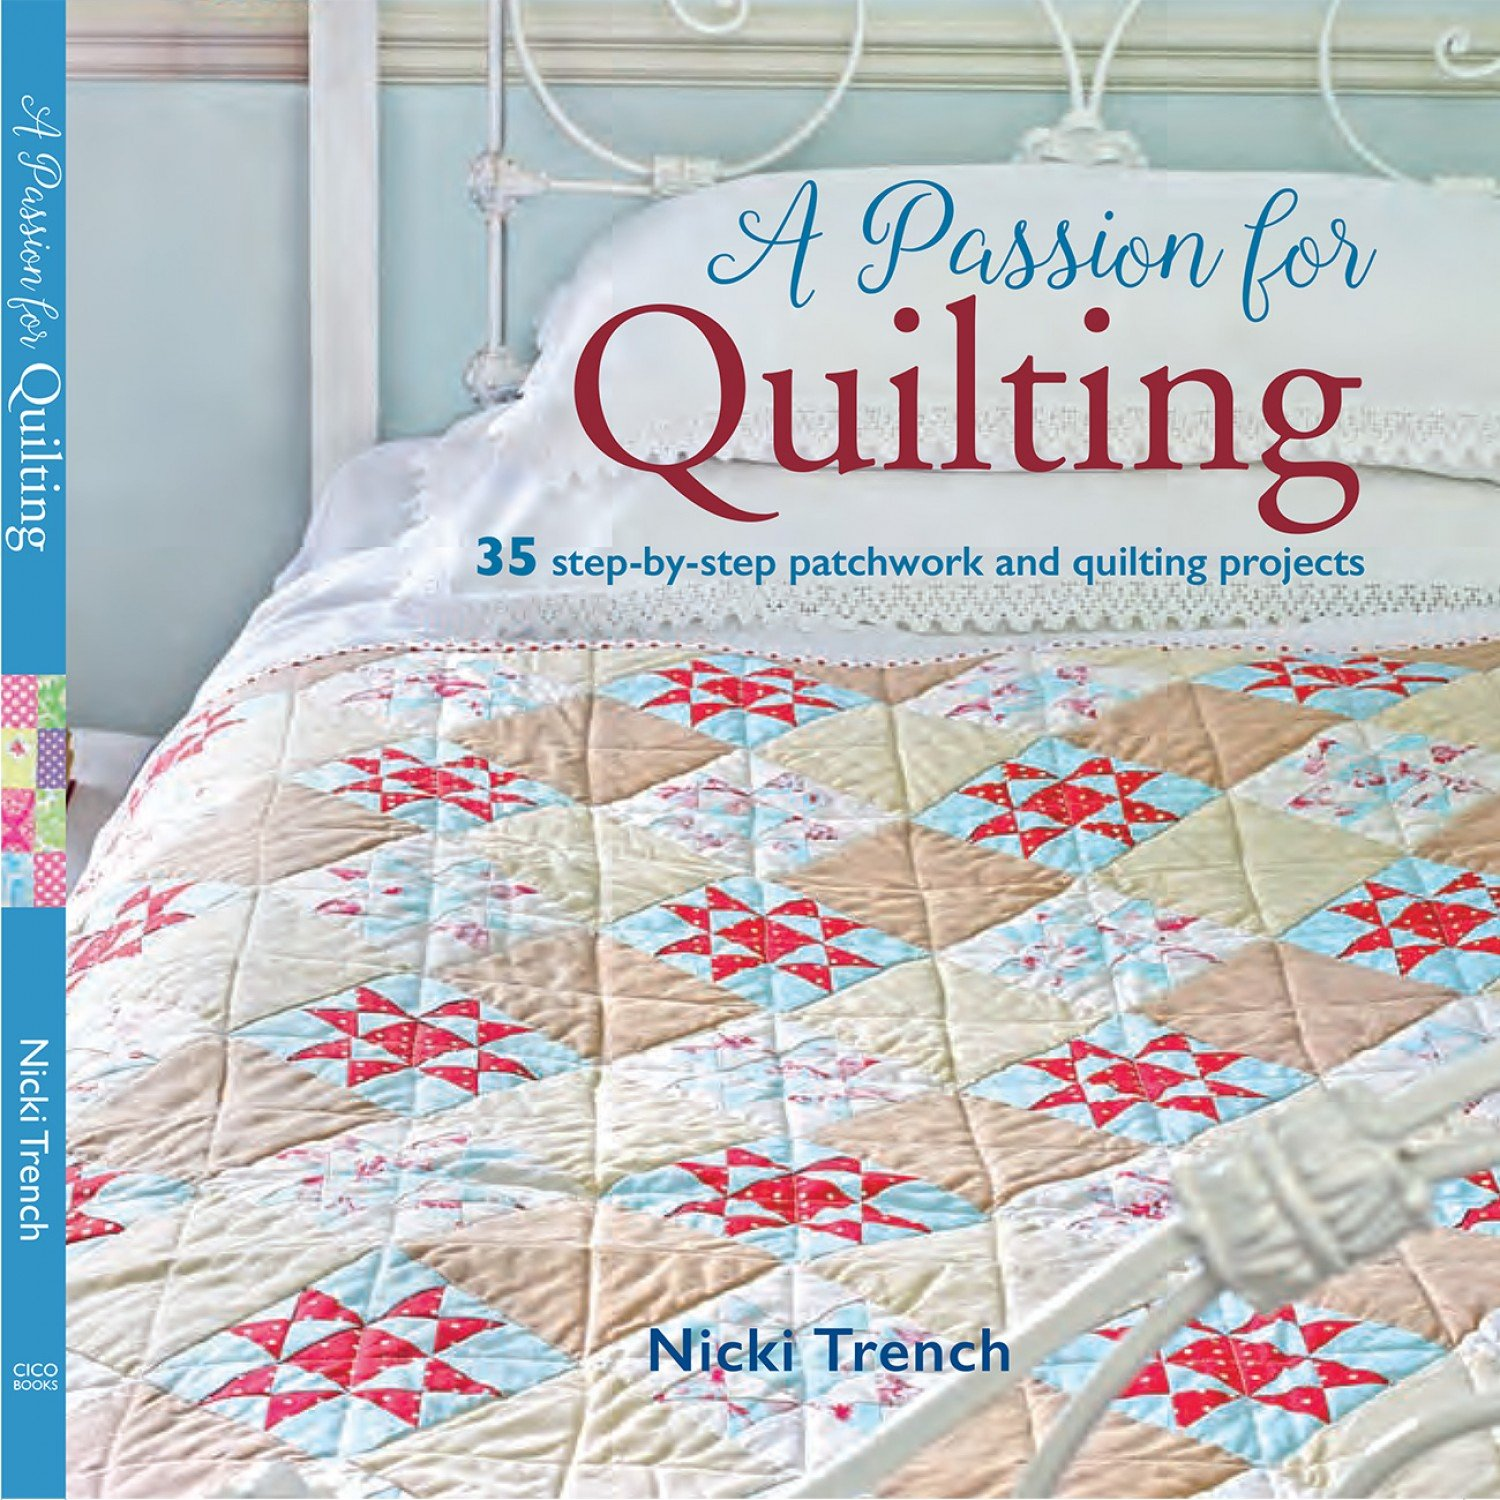 A Passion for Quilting by Nicki Trench RP-584